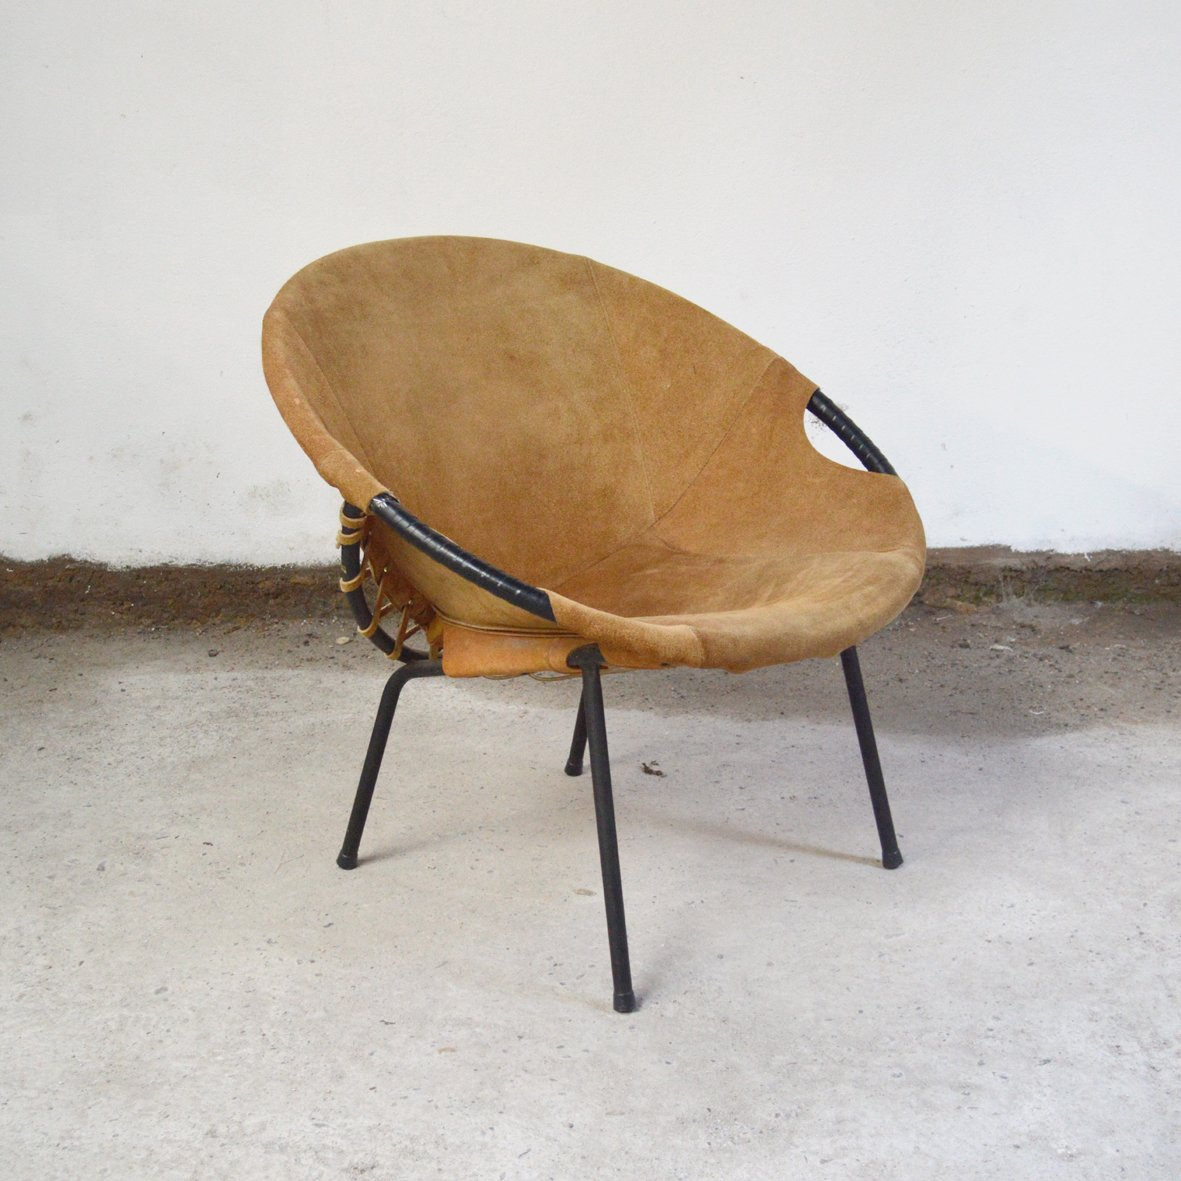 co chairs circle tall back chair from lusch erzeugnis 1960s for sale at pamono